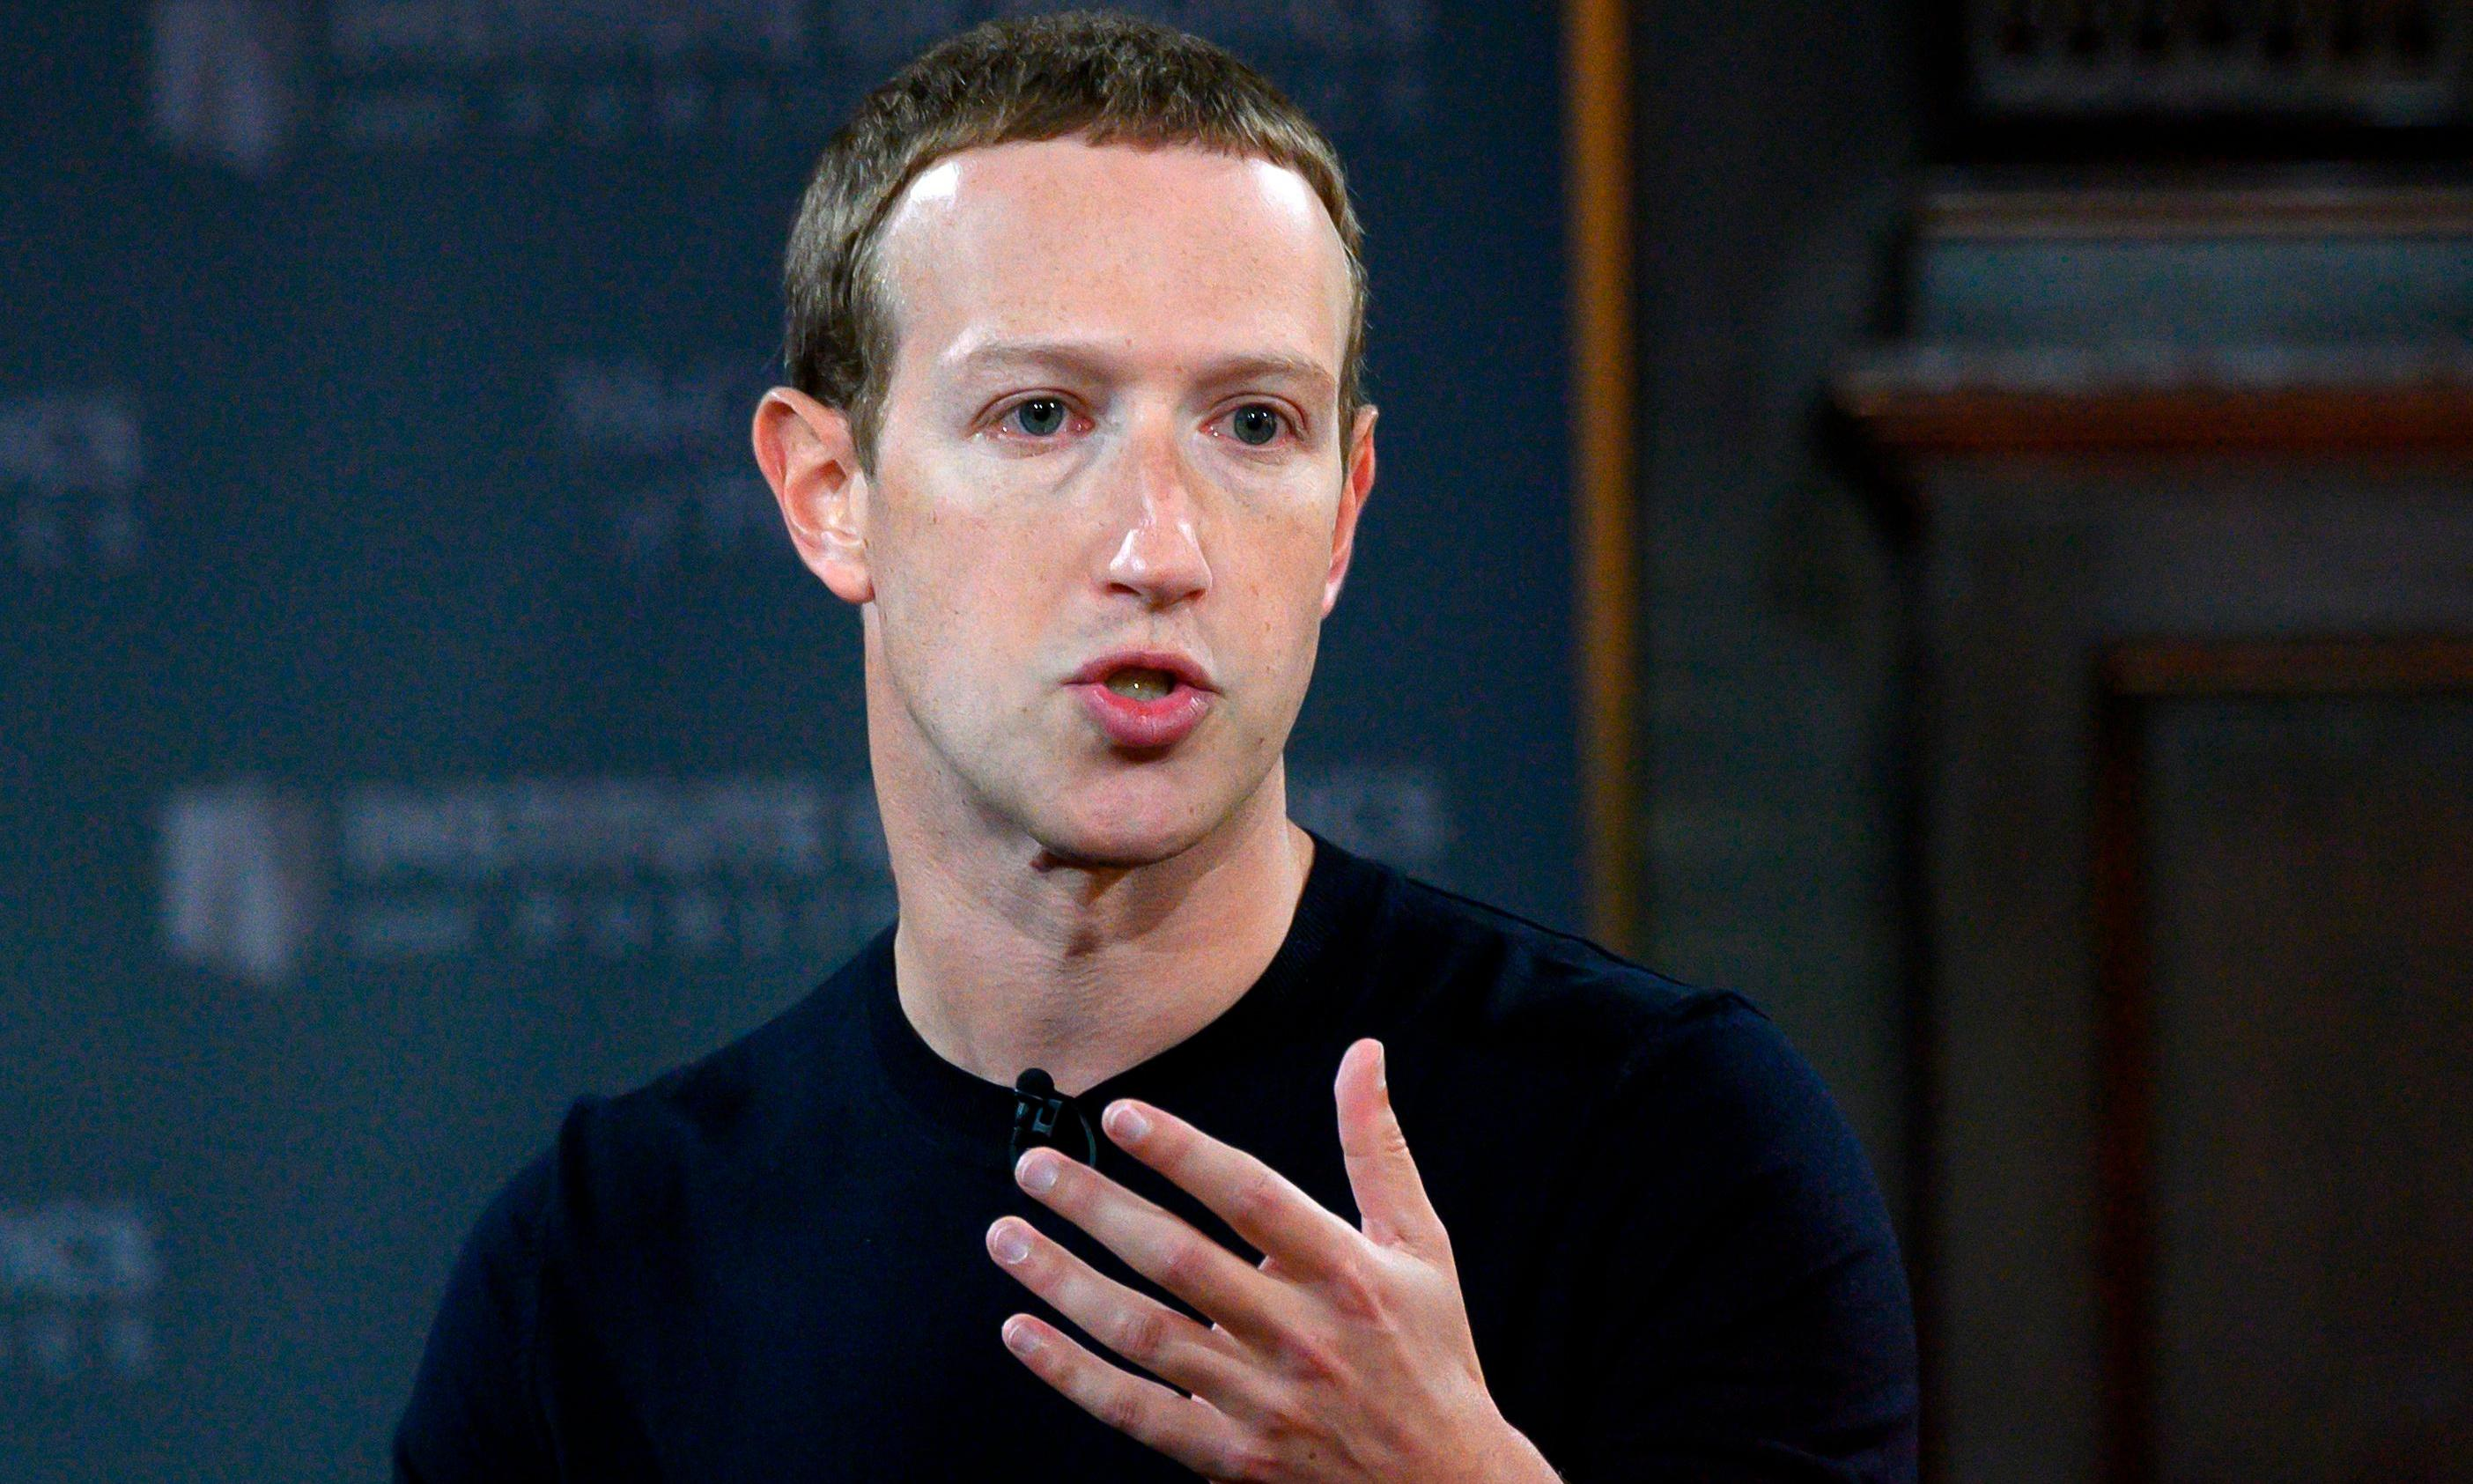 Mark Zuckerberg's plea for the billionaire class is deeply anti-democratic